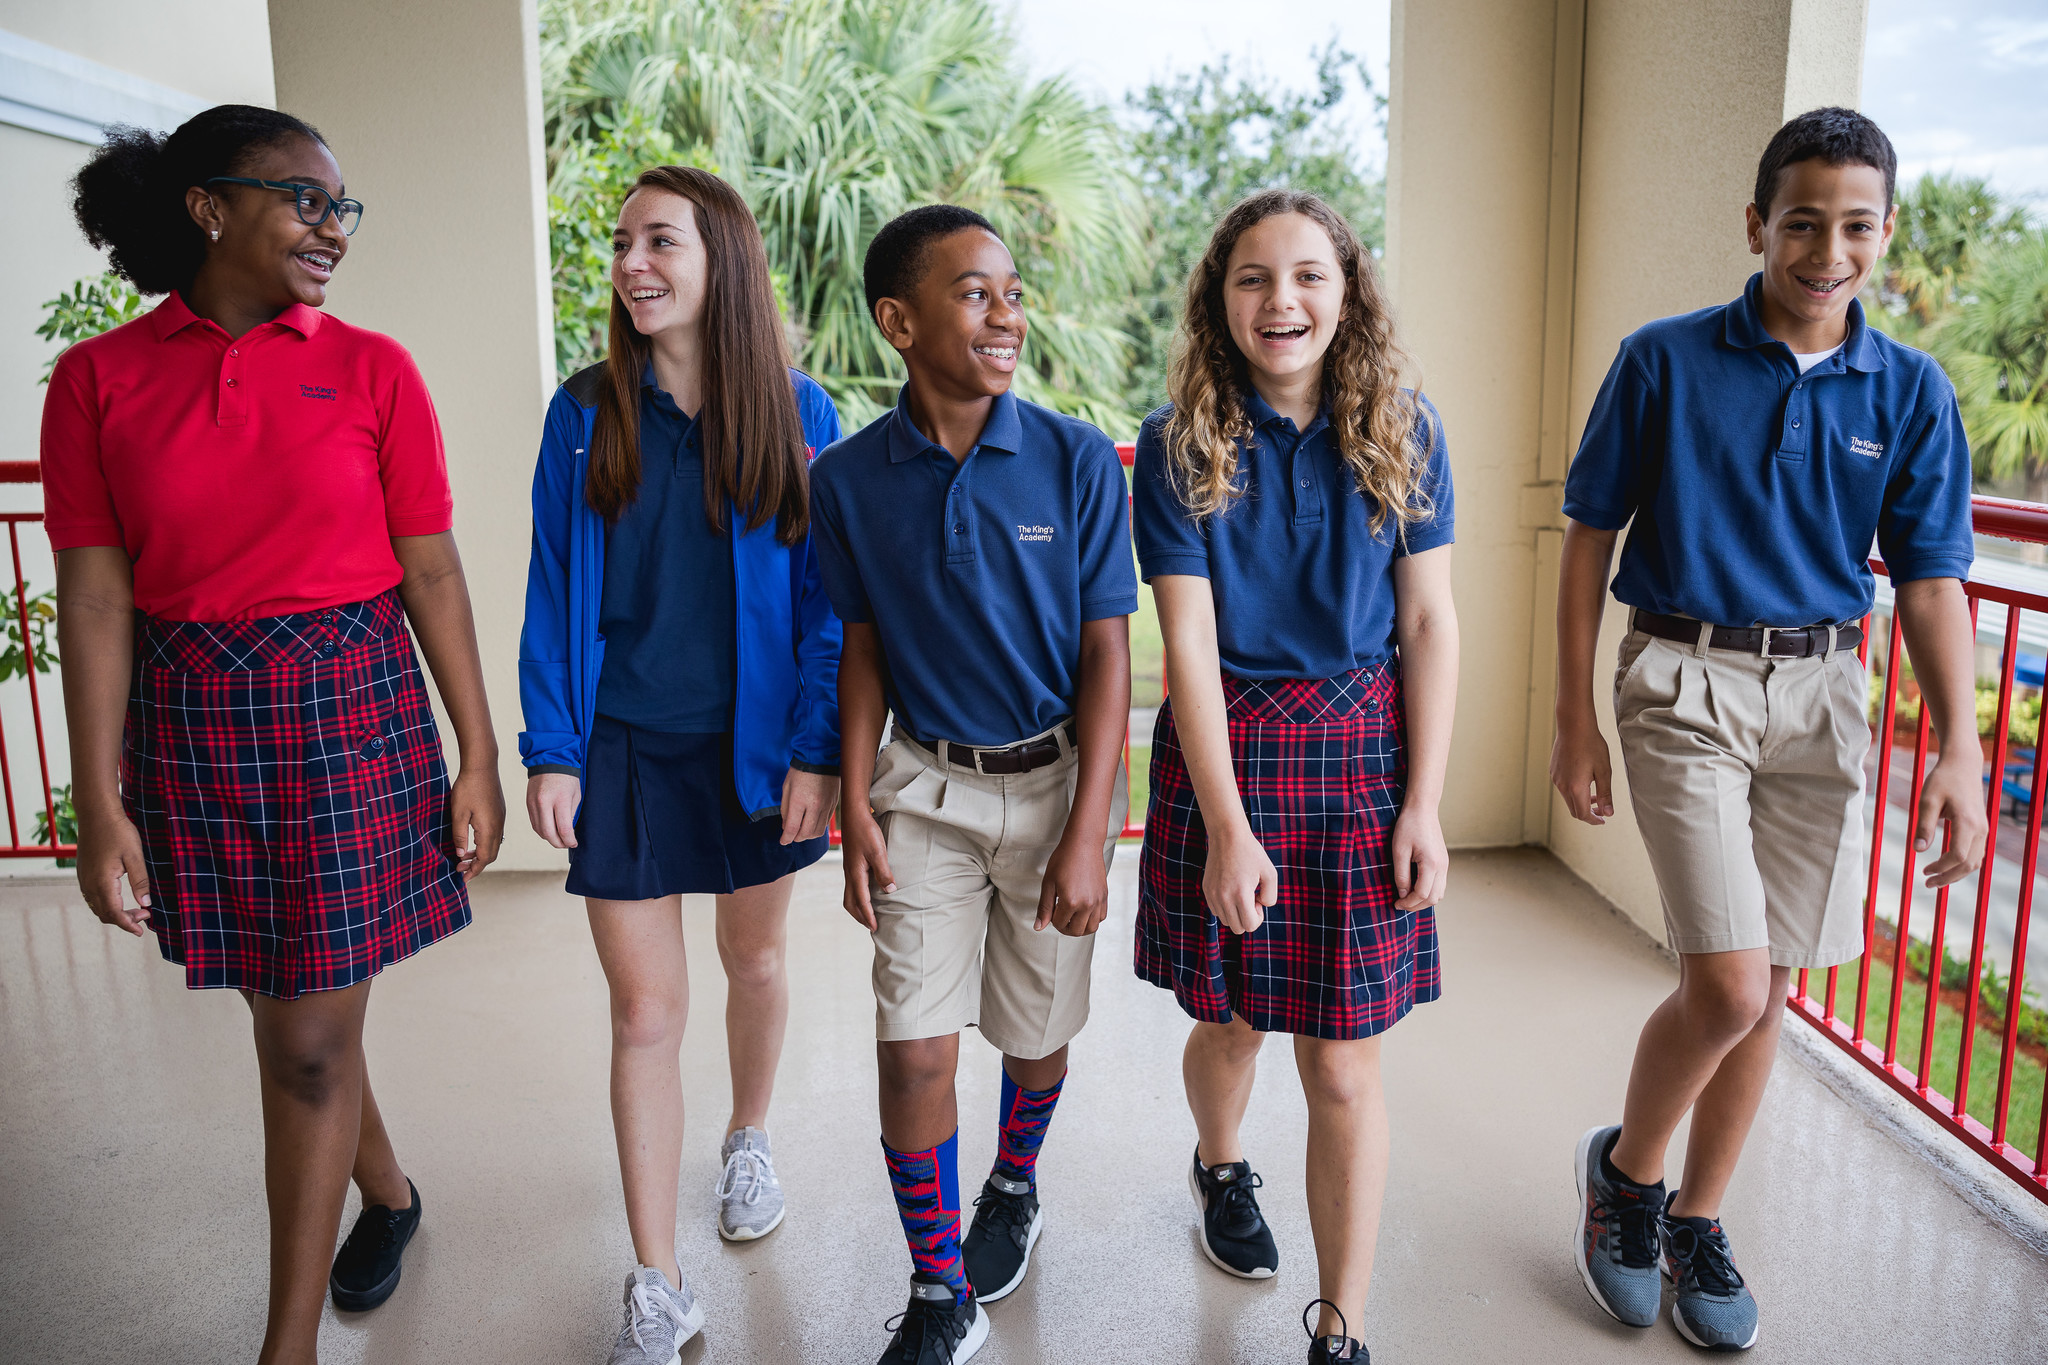 Start the year with fresh uniforms!